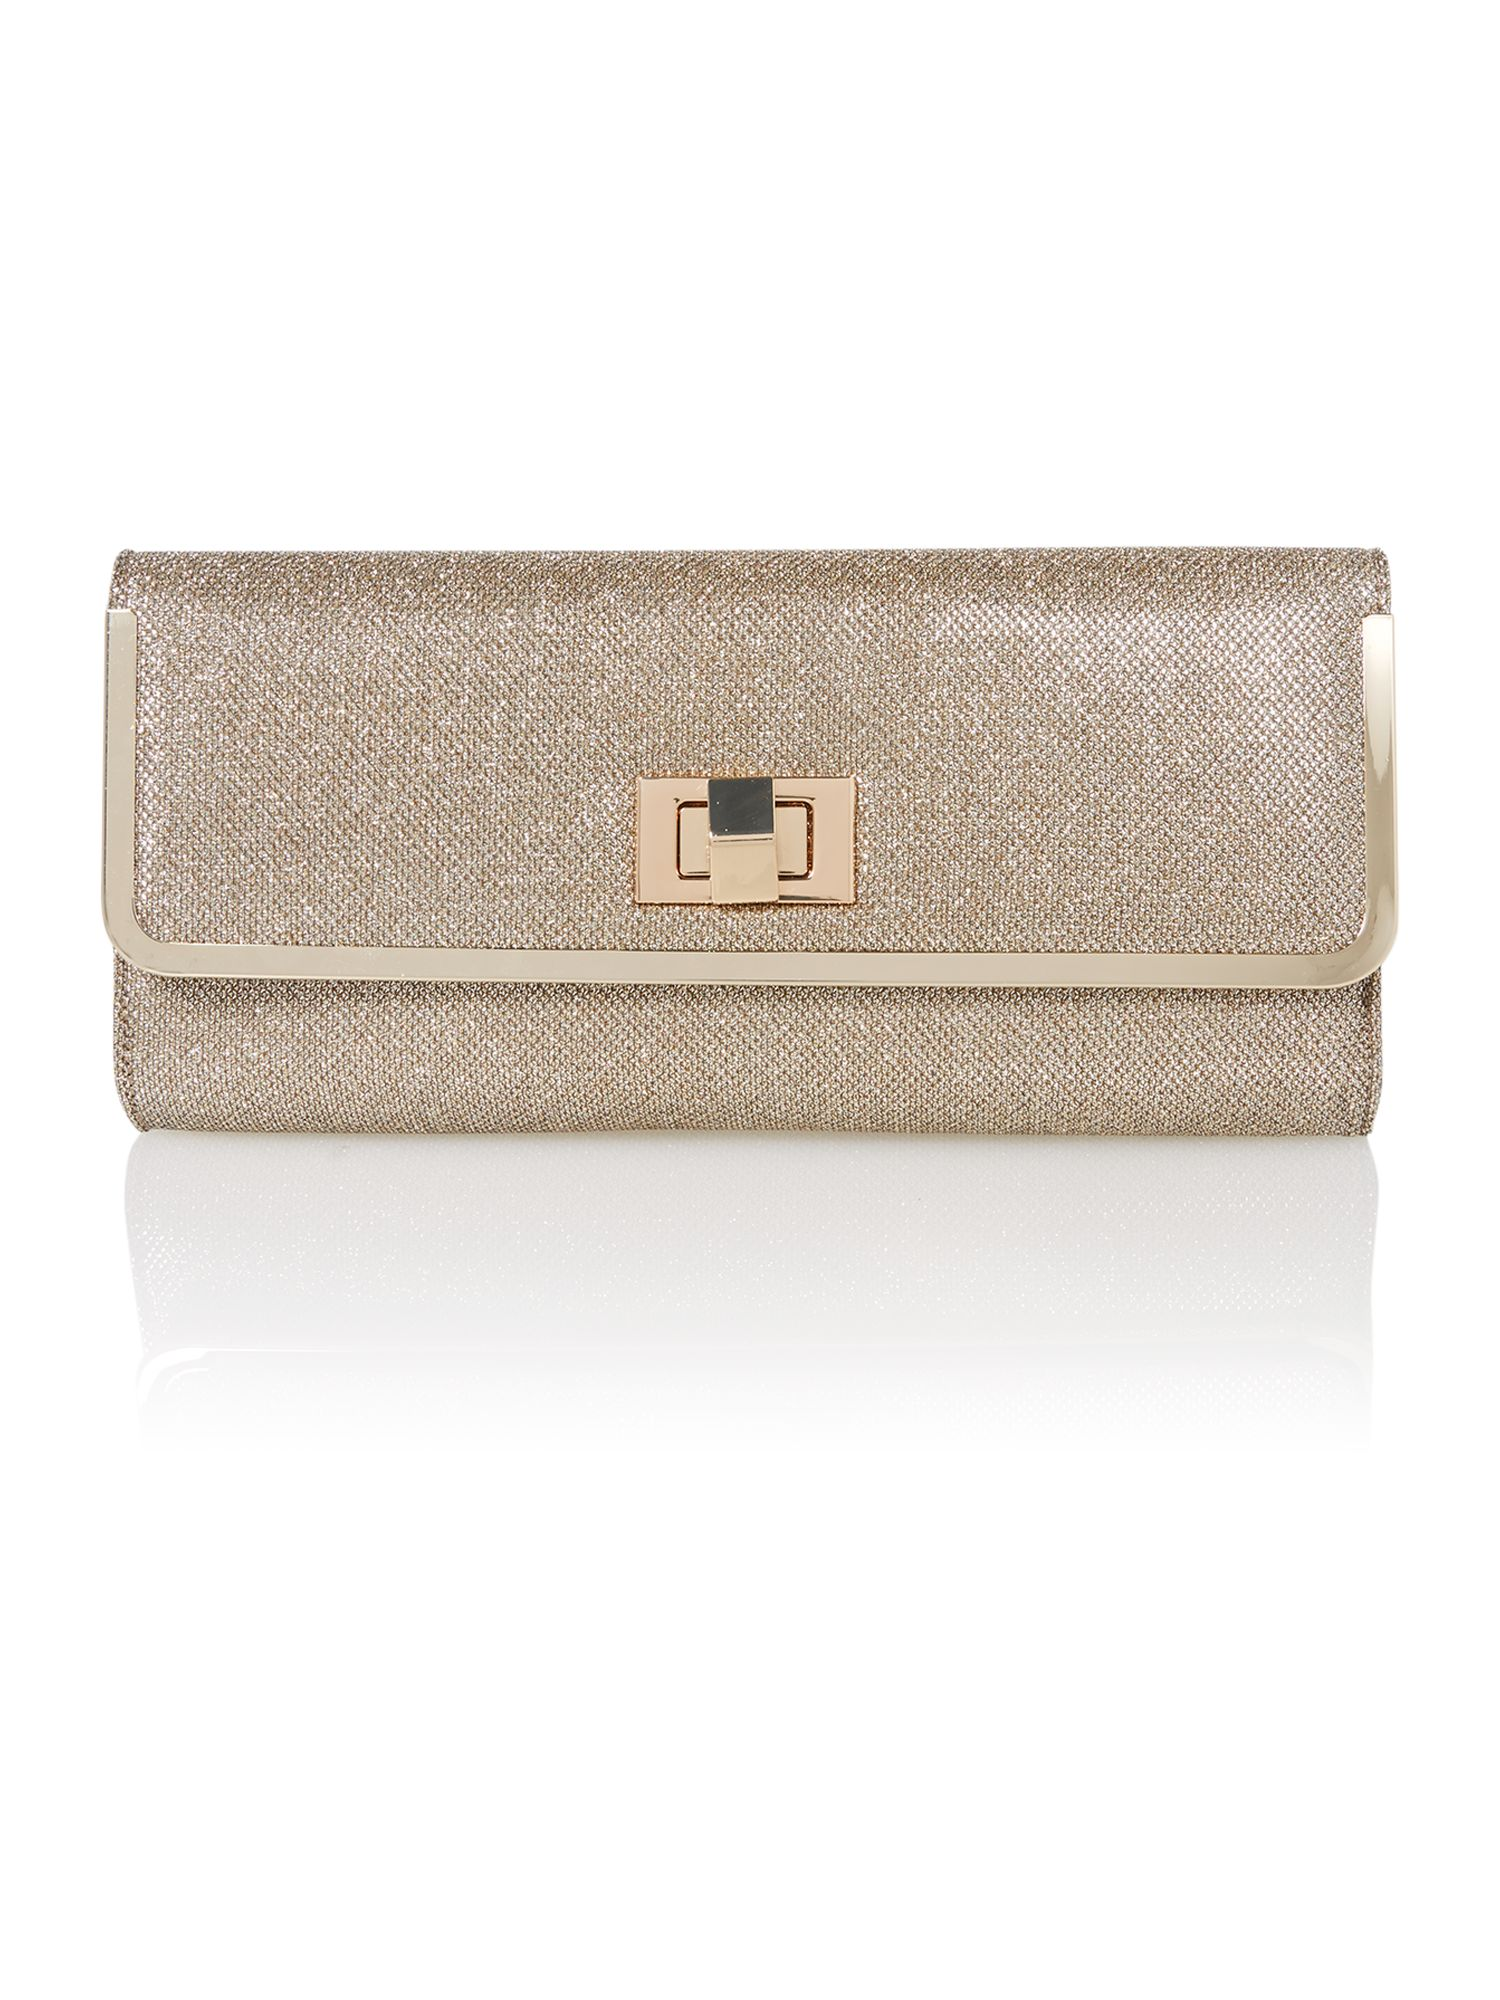 Nude sparkle clutch bag